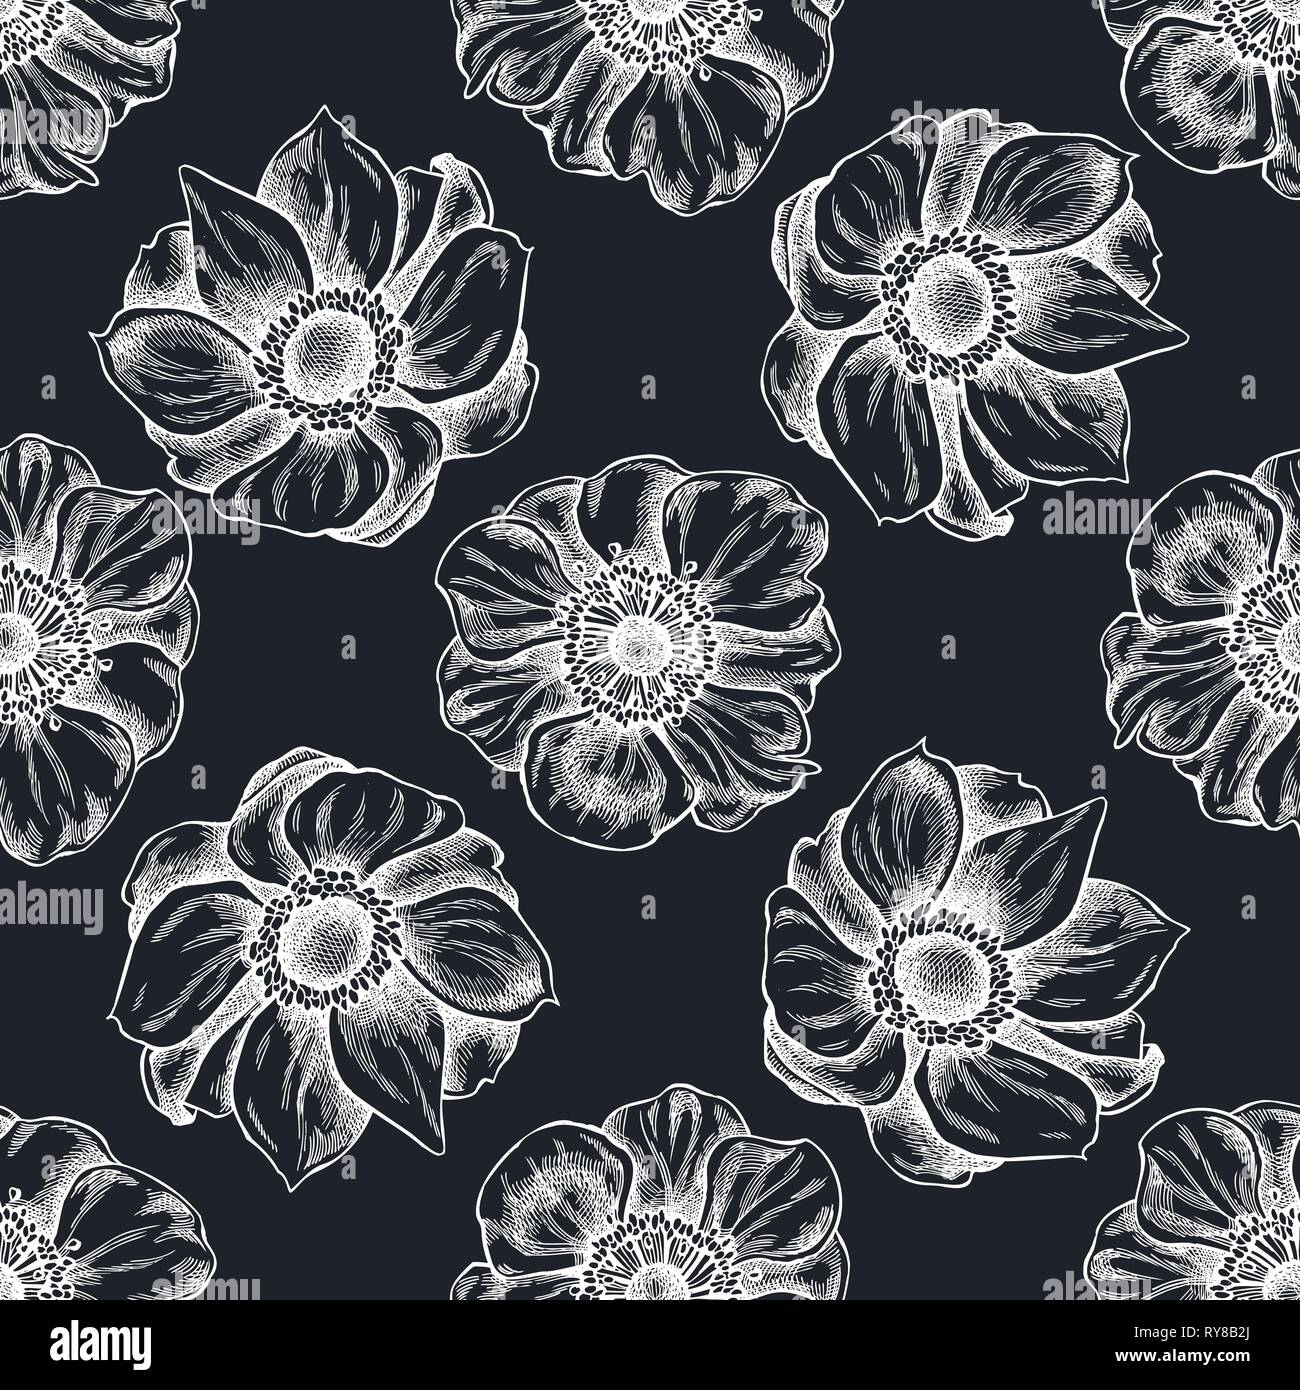 Seamless pattern with hand drawn chalk anemone - Stock Vector